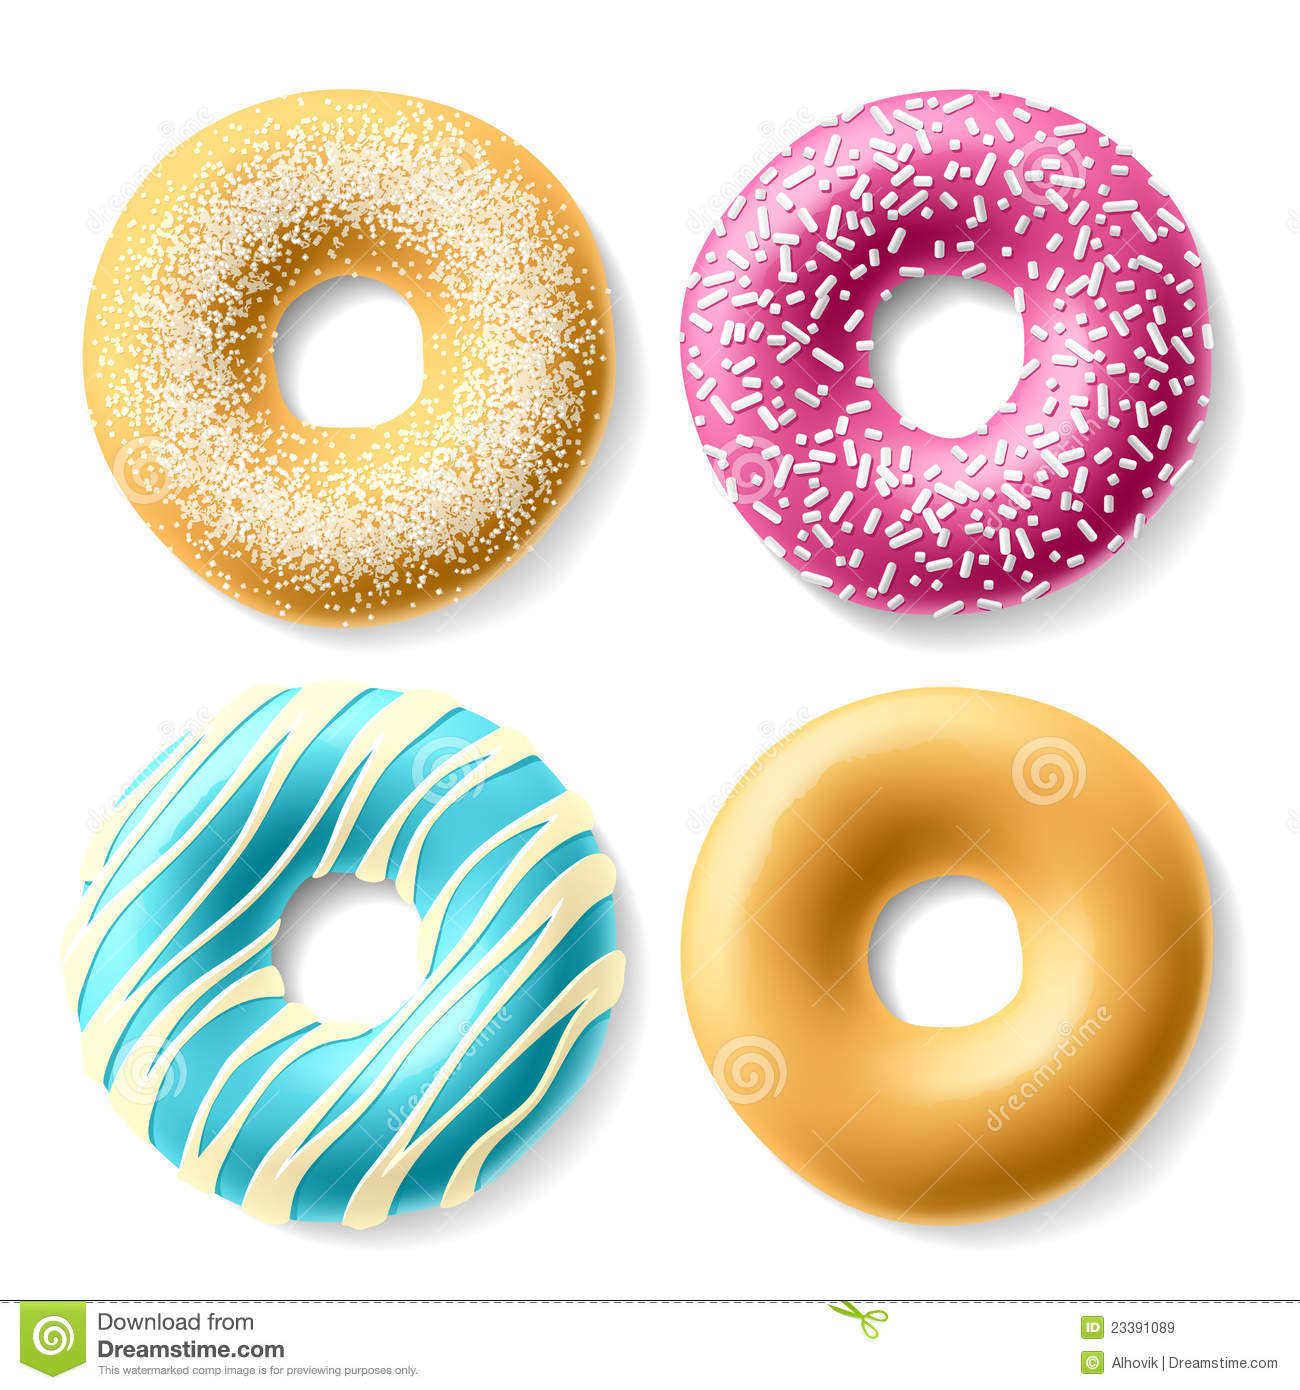 Colorful Donuts Royalty Free Stock Images - Image: 23391089